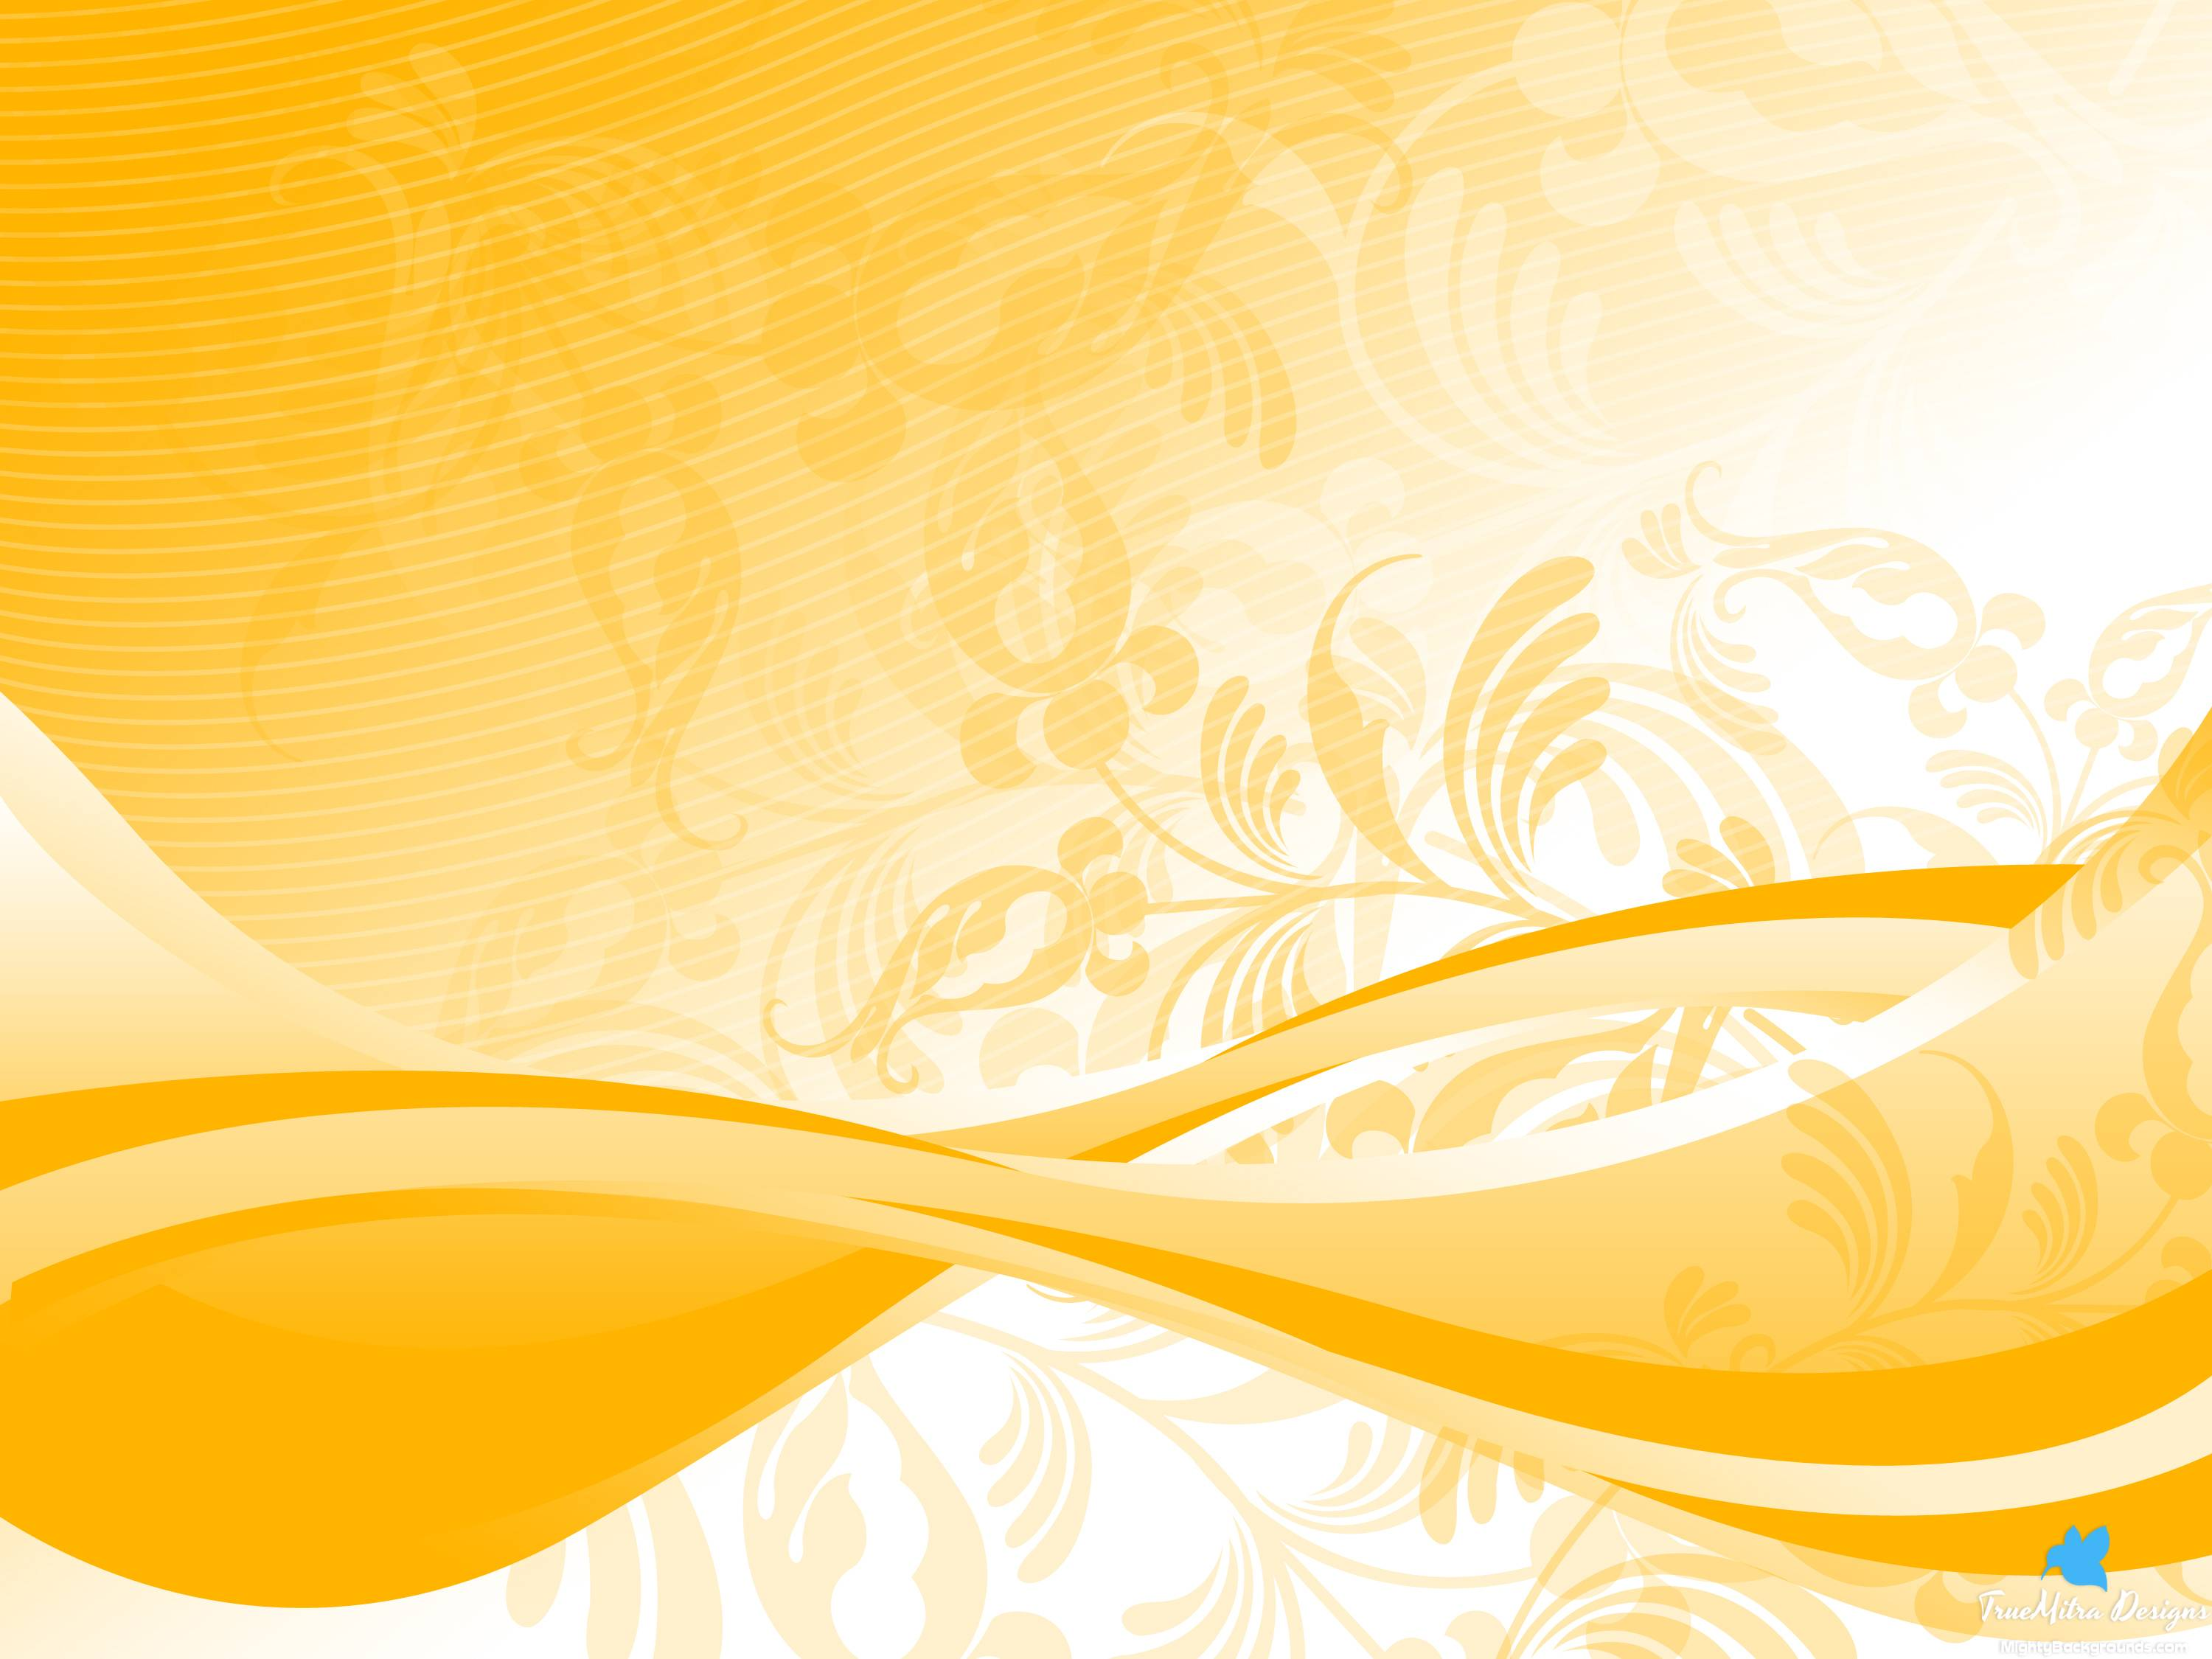 Yellow background images wallpaper cave - Abstract Backgrounds Wallpaper Cave